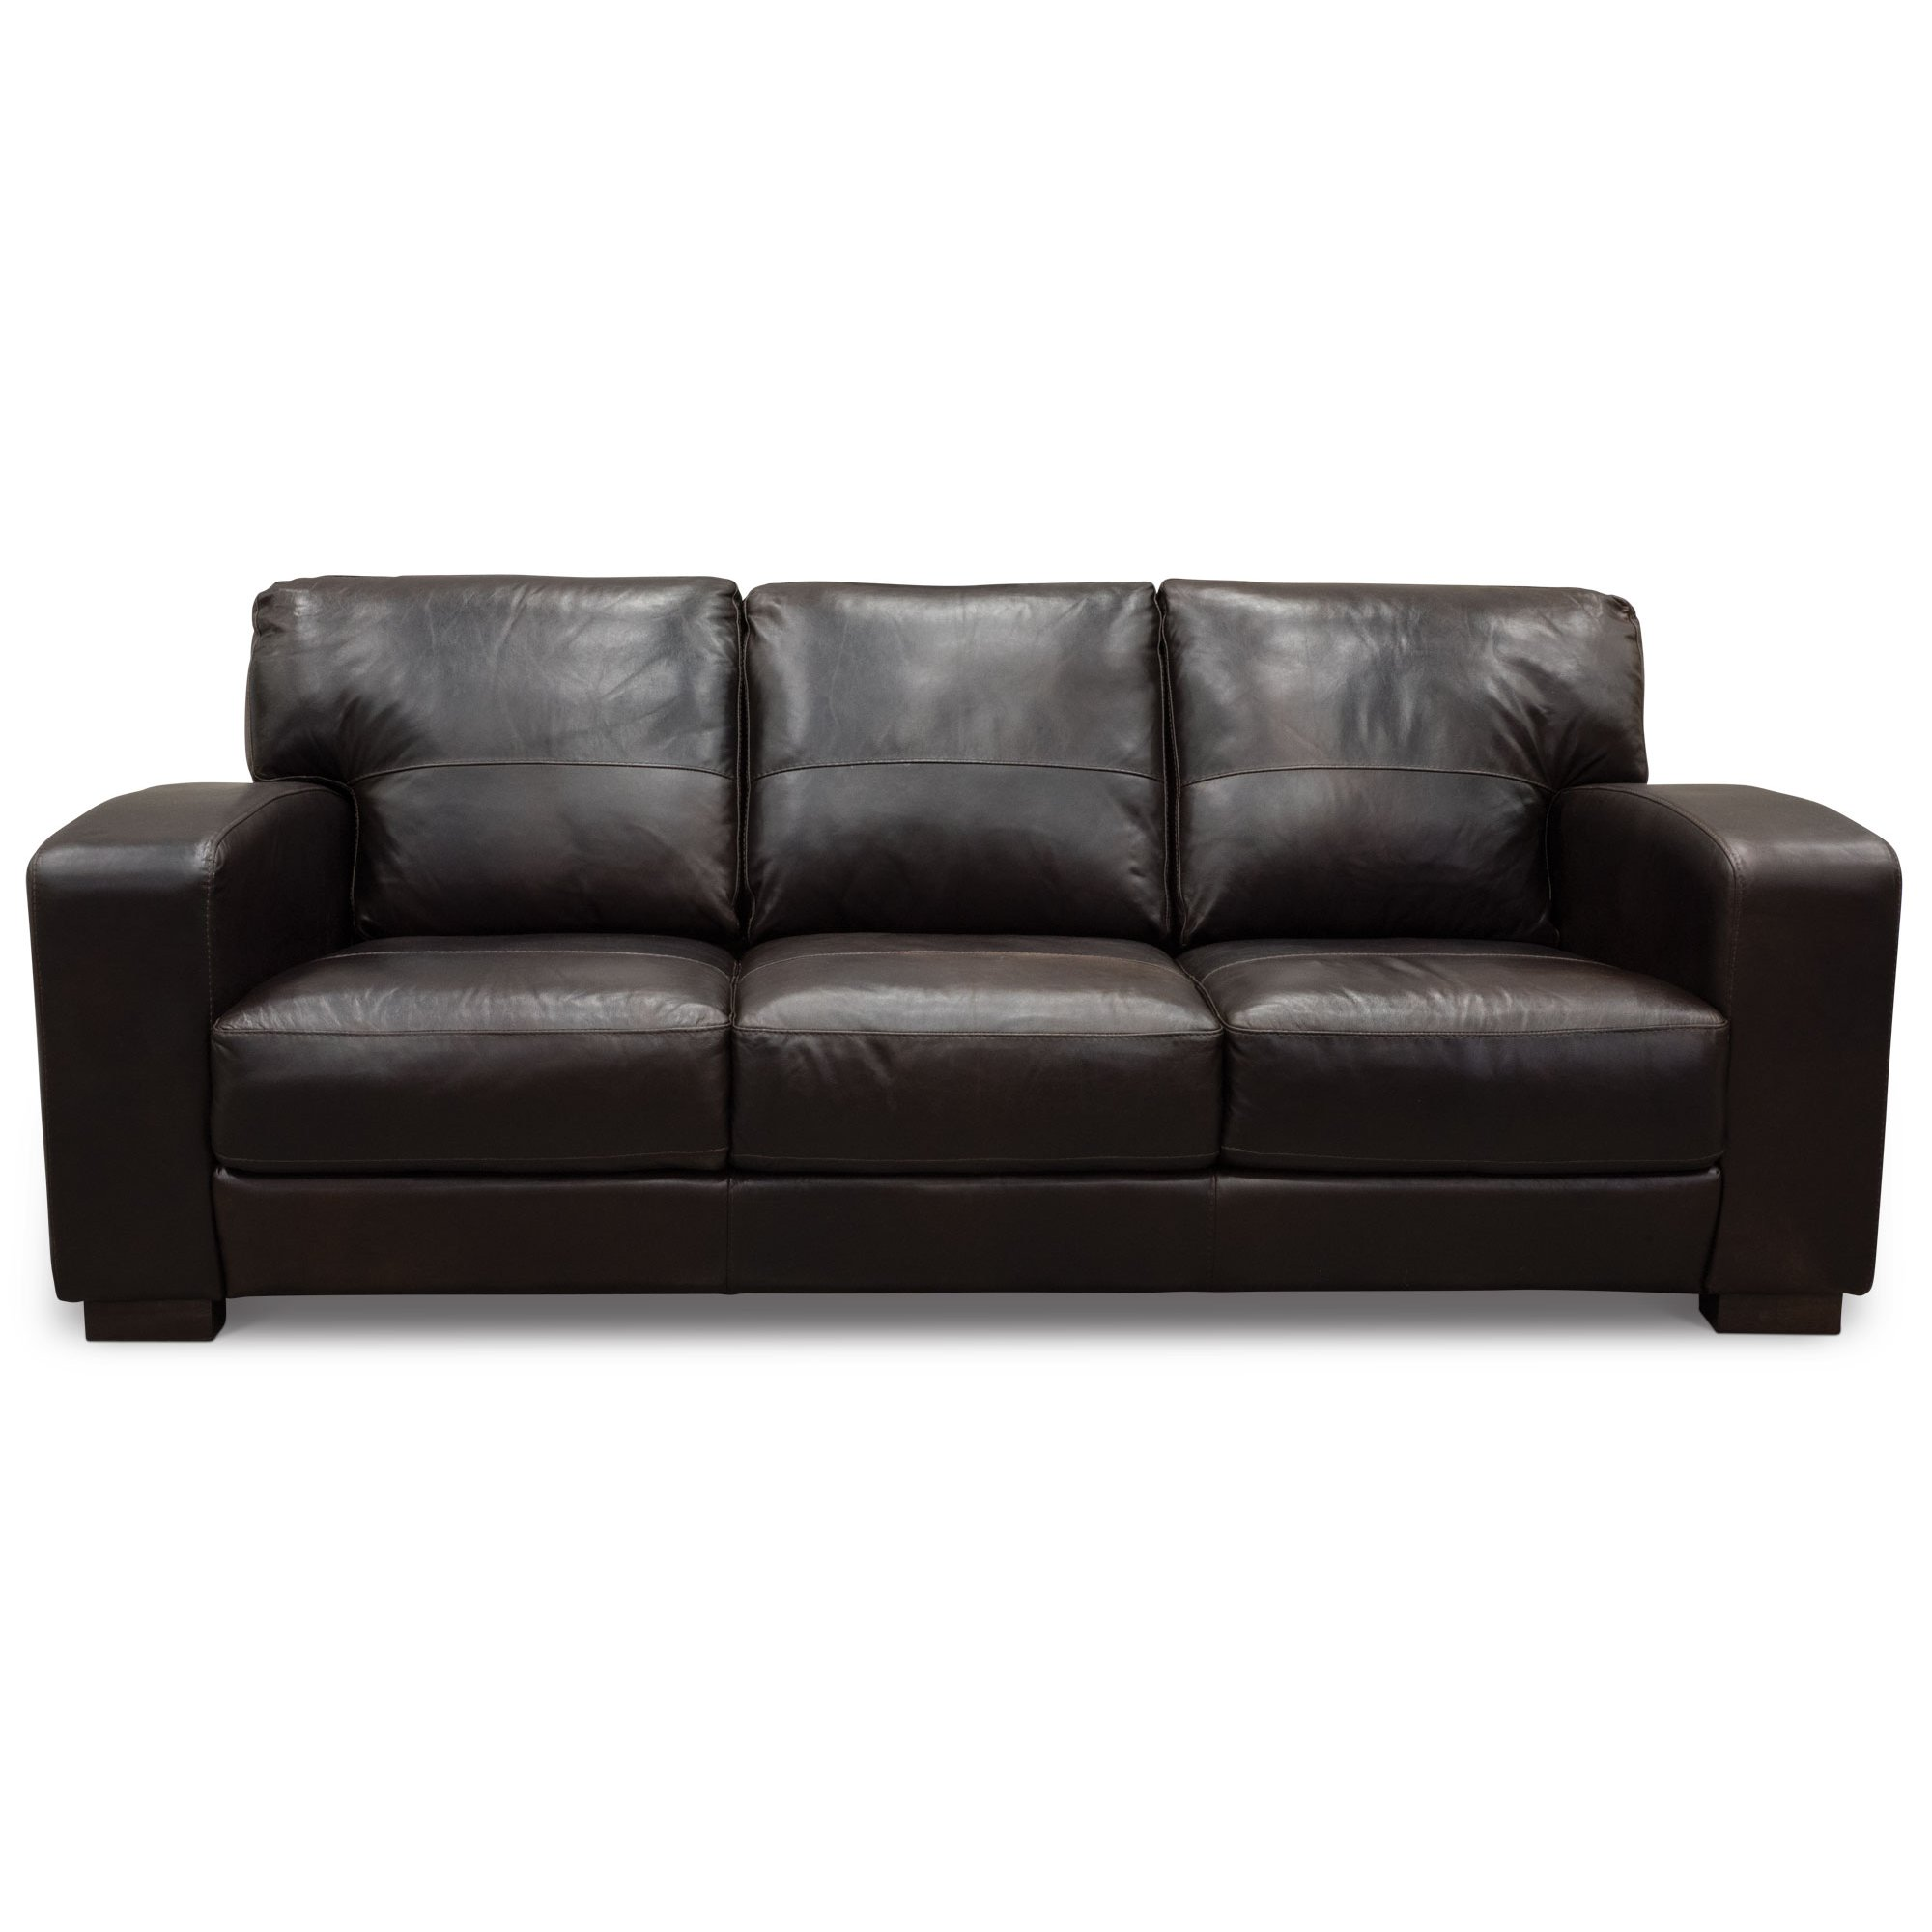 Contemporary Brown Leather Sofa Style Of Decorate With